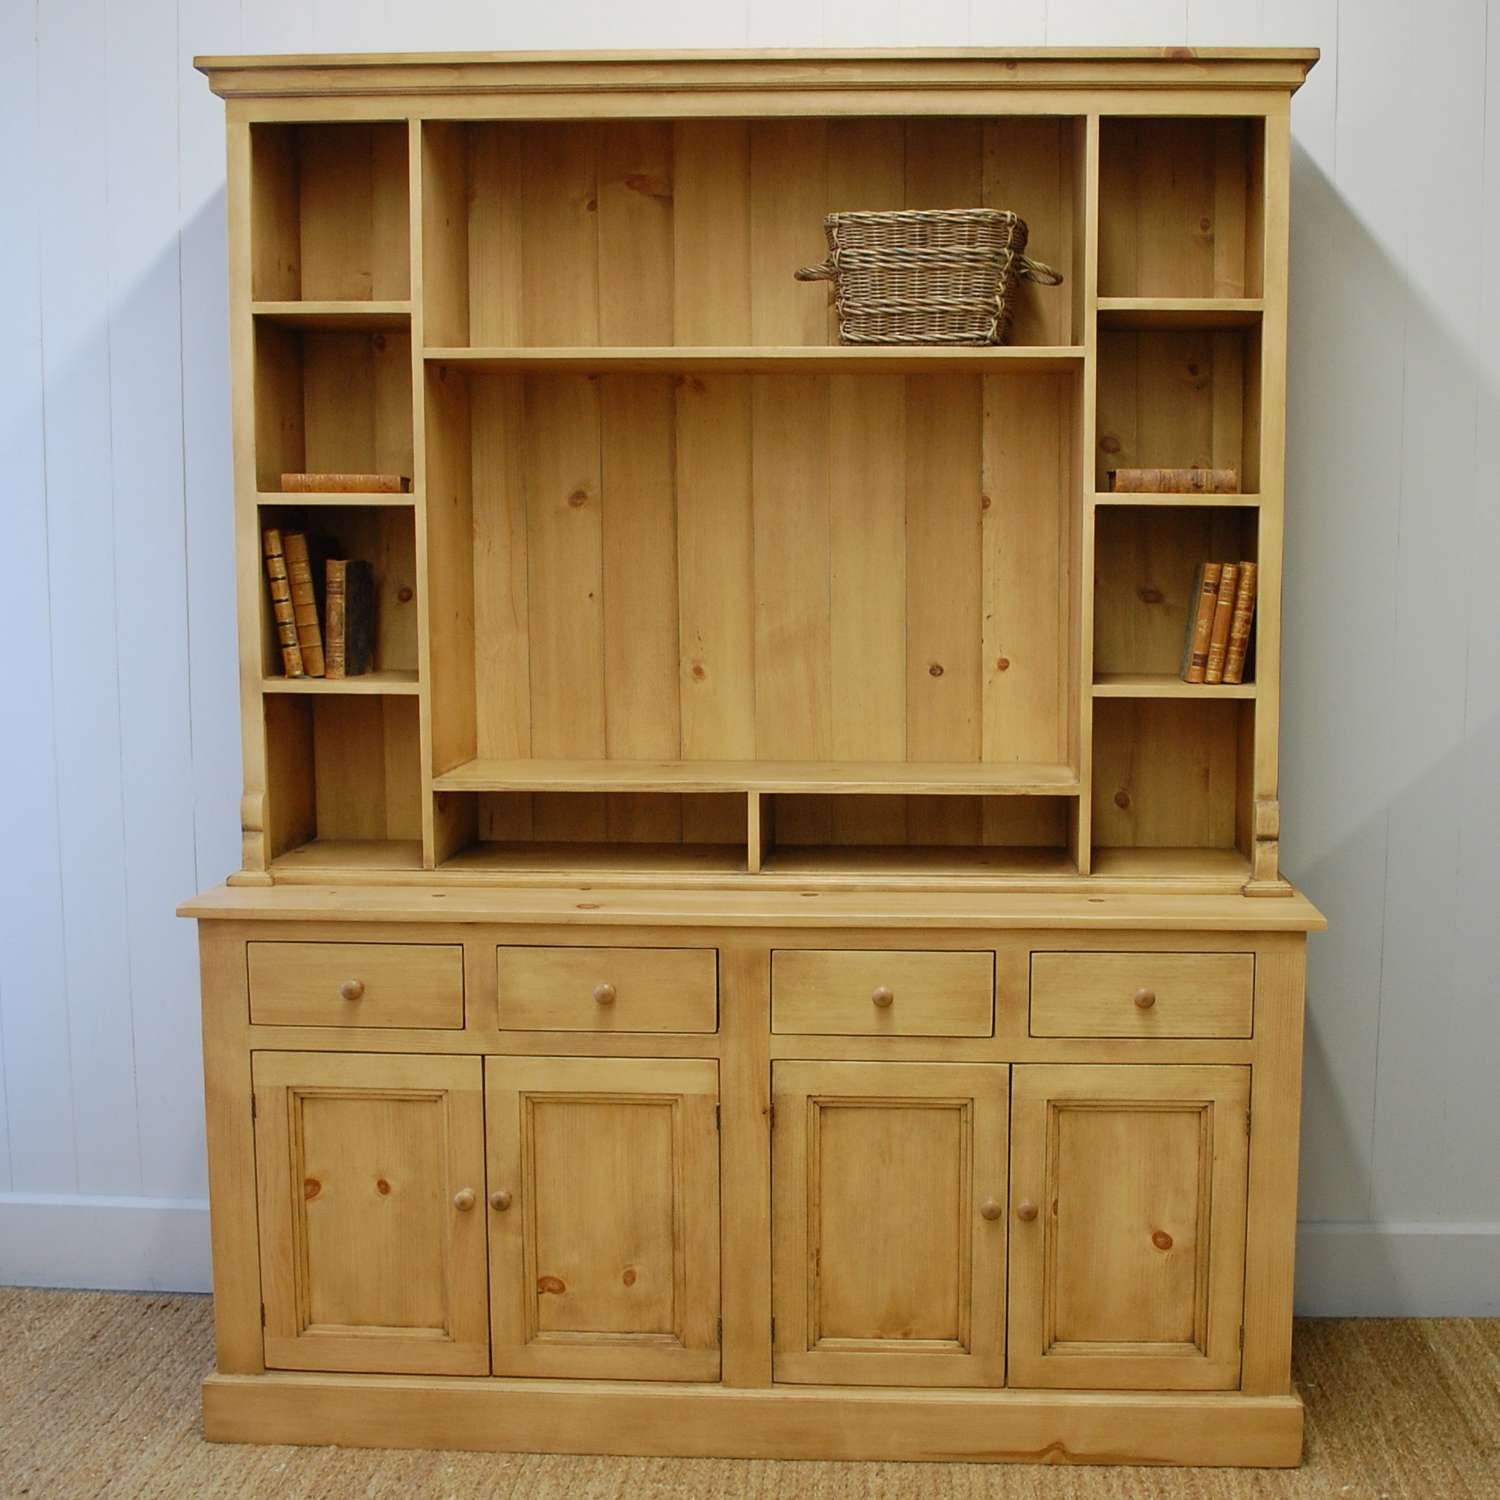 English Farmhouse Furniture Sideboards & Hutches – Layla Grayce With Regard To Sideboards And Hutches (View 4 of 20)